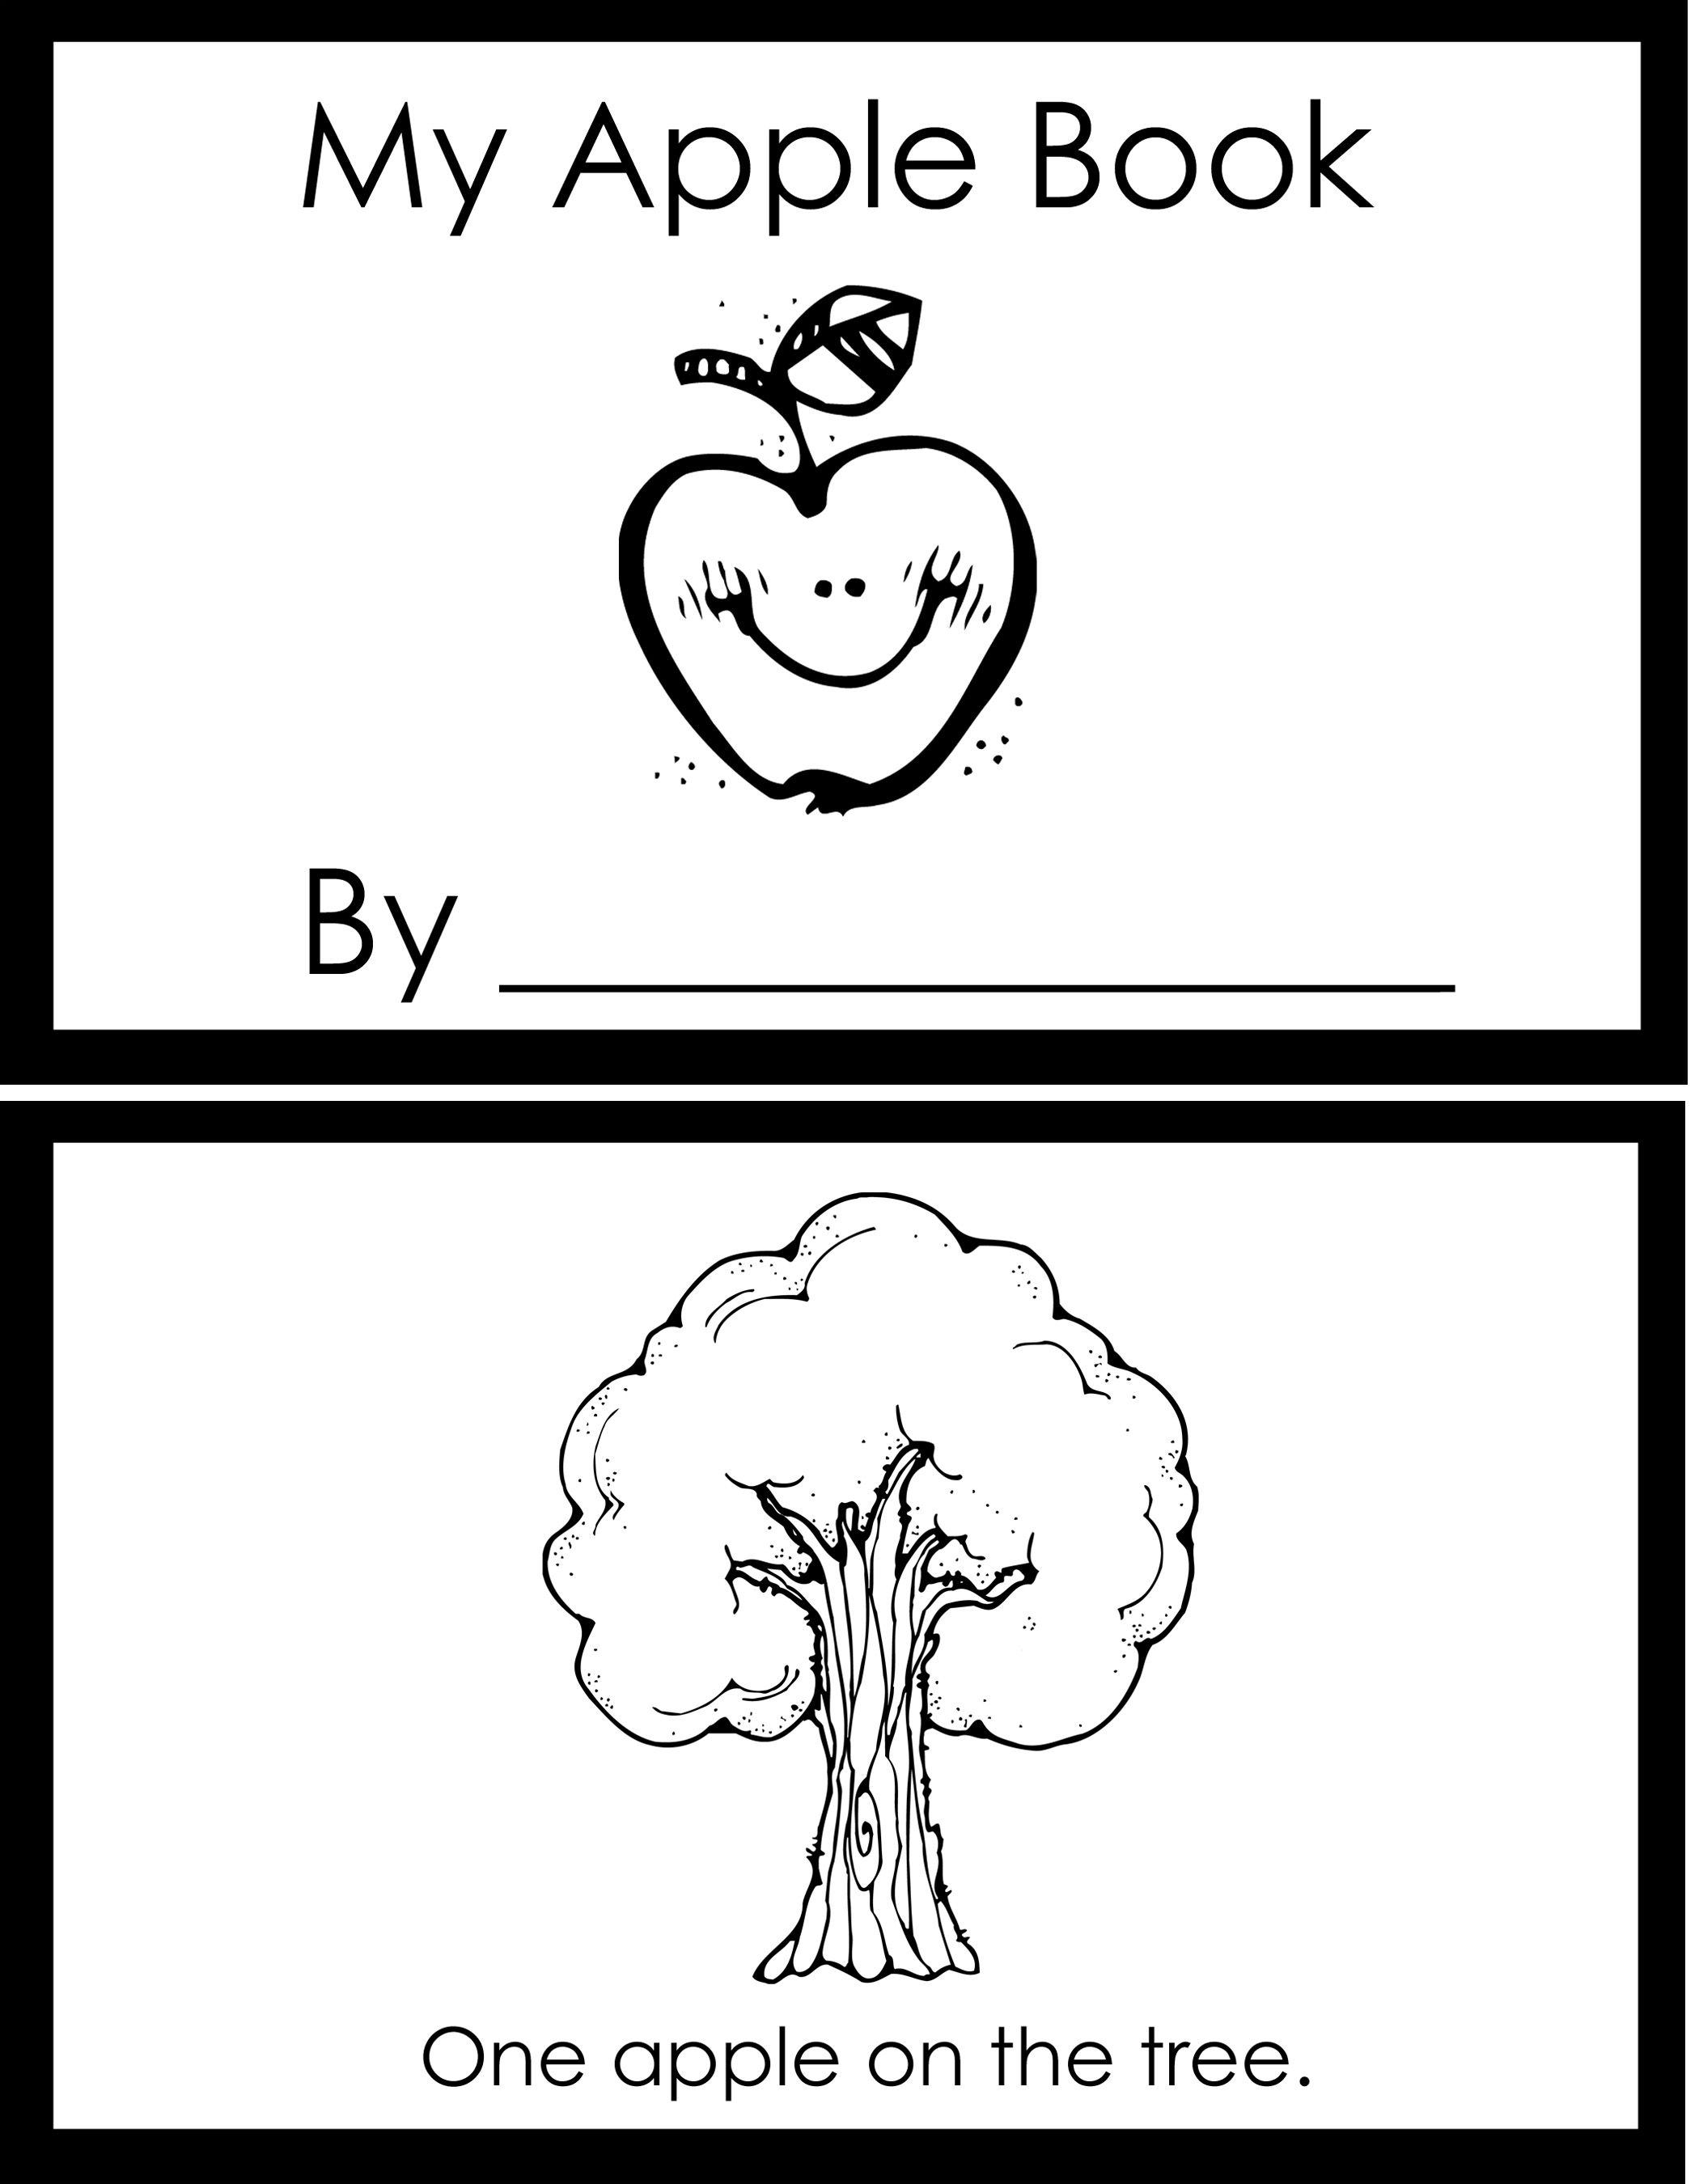 coloring apple worksheets for preschool free a is for apple alphabet trace and color printable worksheets for coloring preschool apple